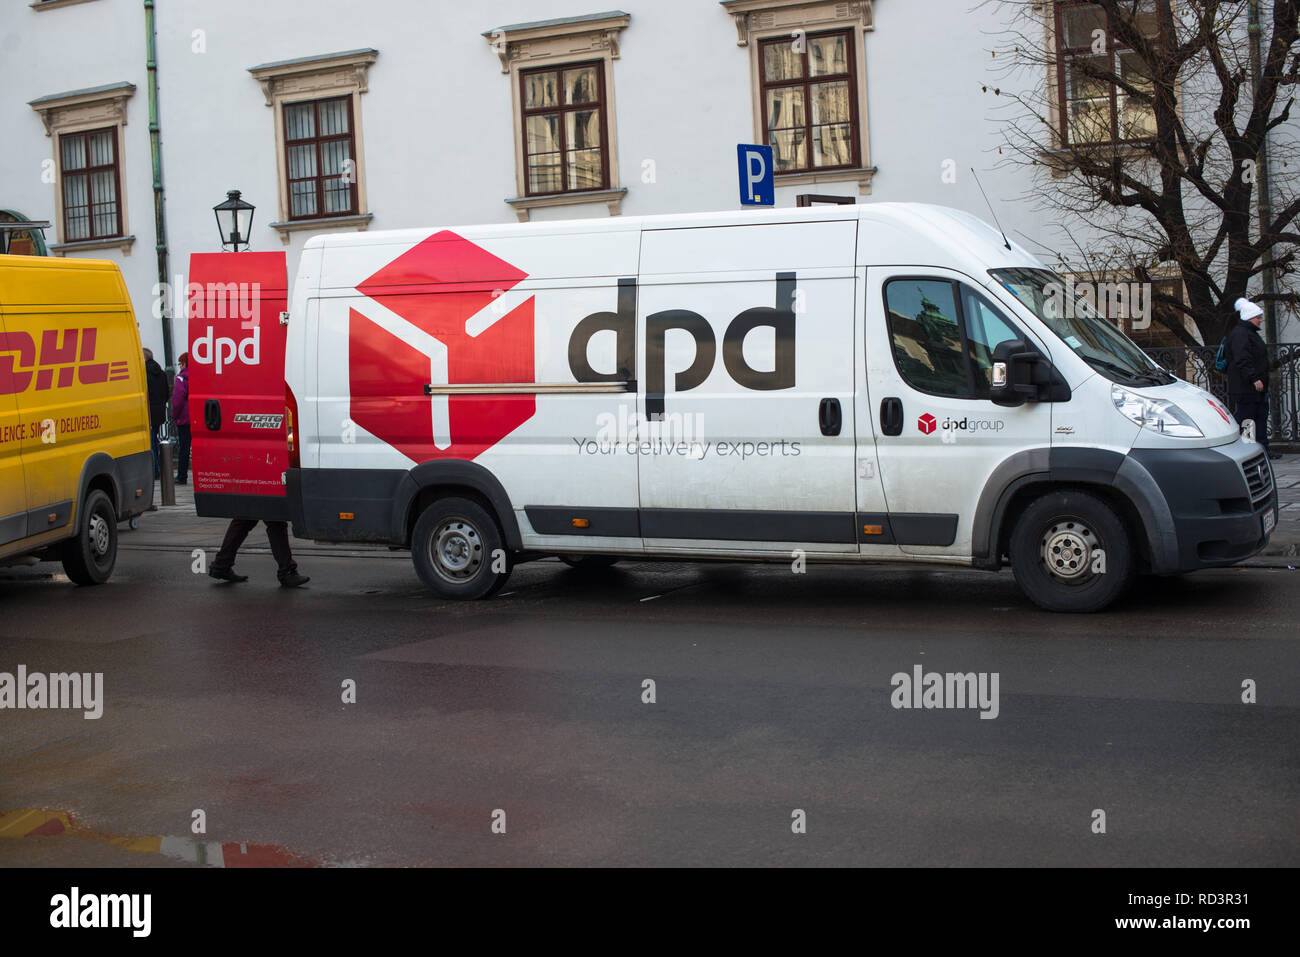 Dpd Delivery Truck Stock Photos & Dpd Delivery Truck Stock Images